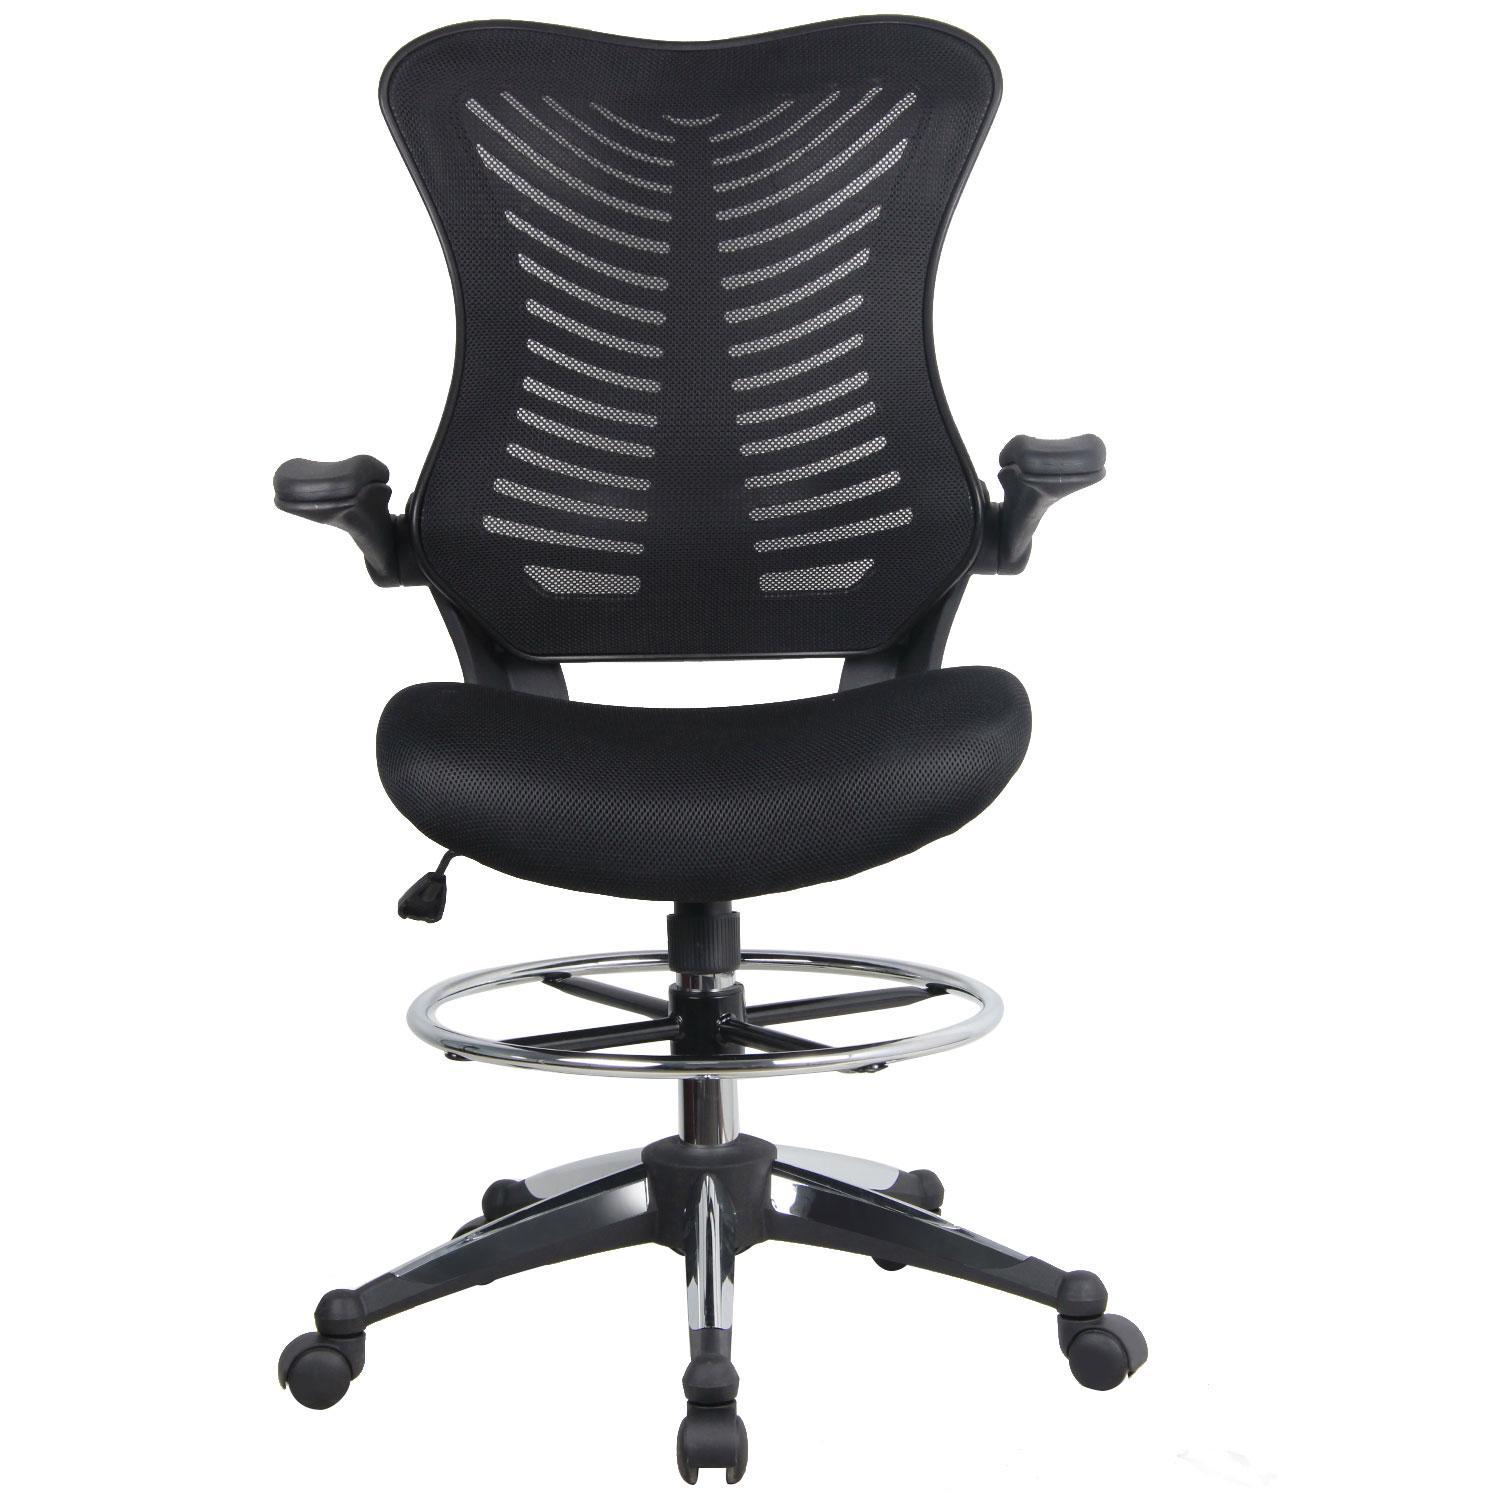 Gentil SPHP The Worth Buy Mesh Task Chair Adjustable New Fashion Ergonomic Office  Stool Chair With